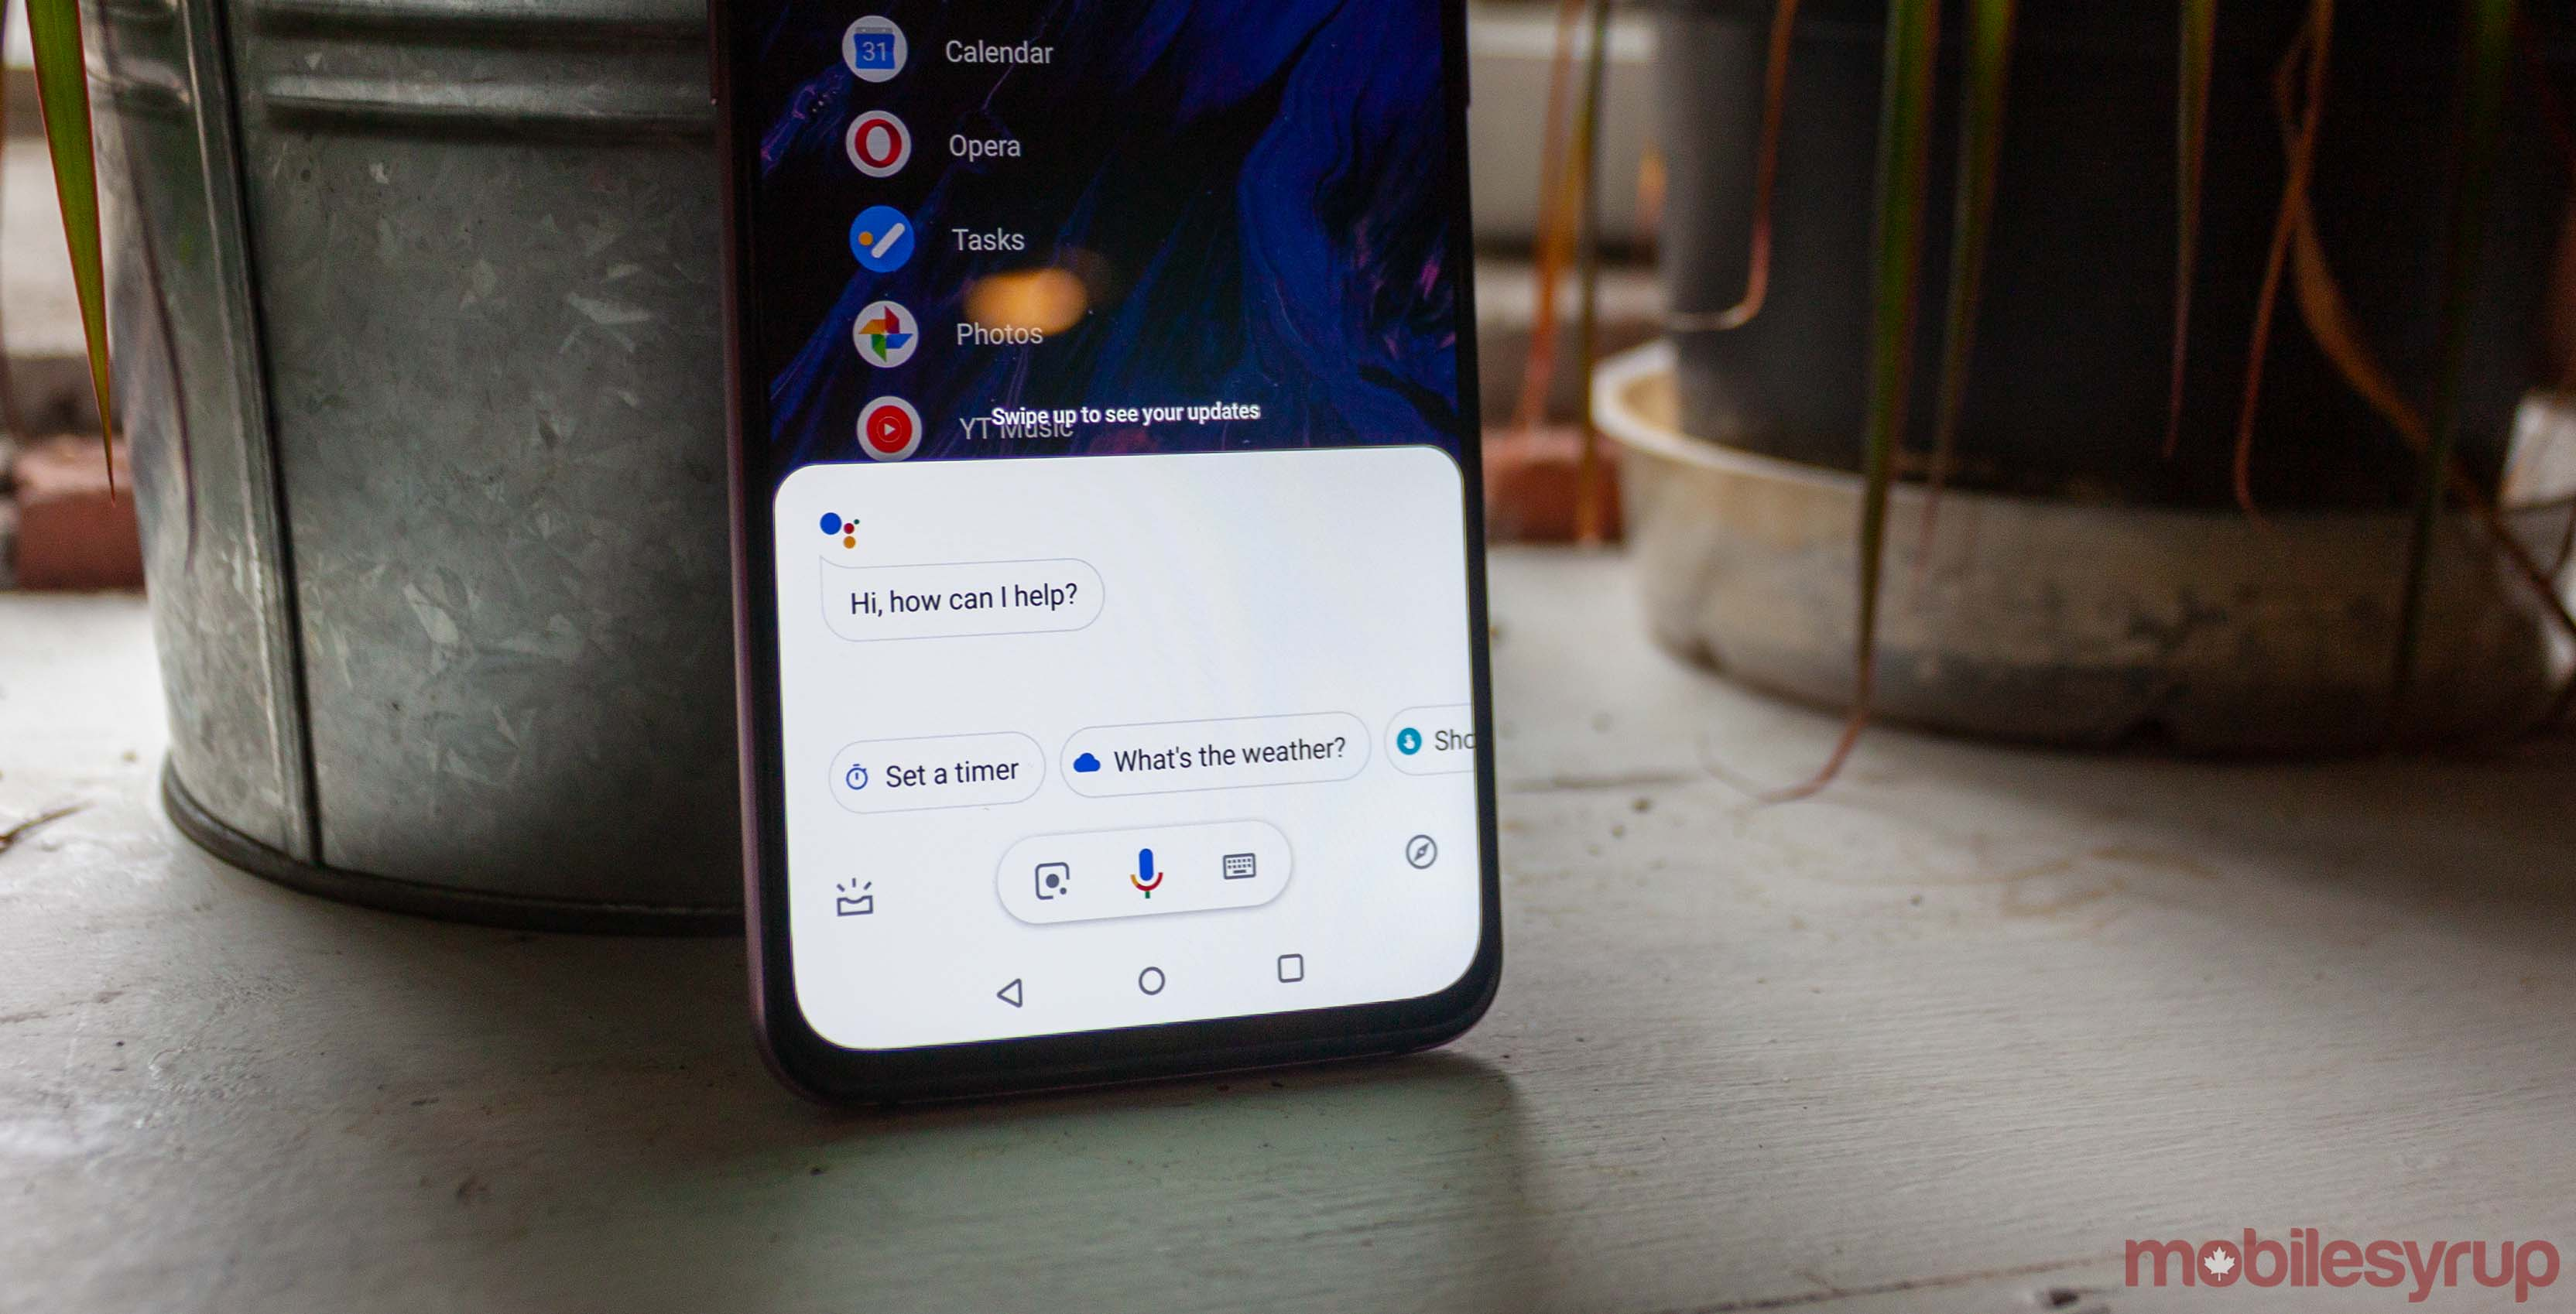 Google Assistant 'Ambient Mode' turns mobile devices into smart displays